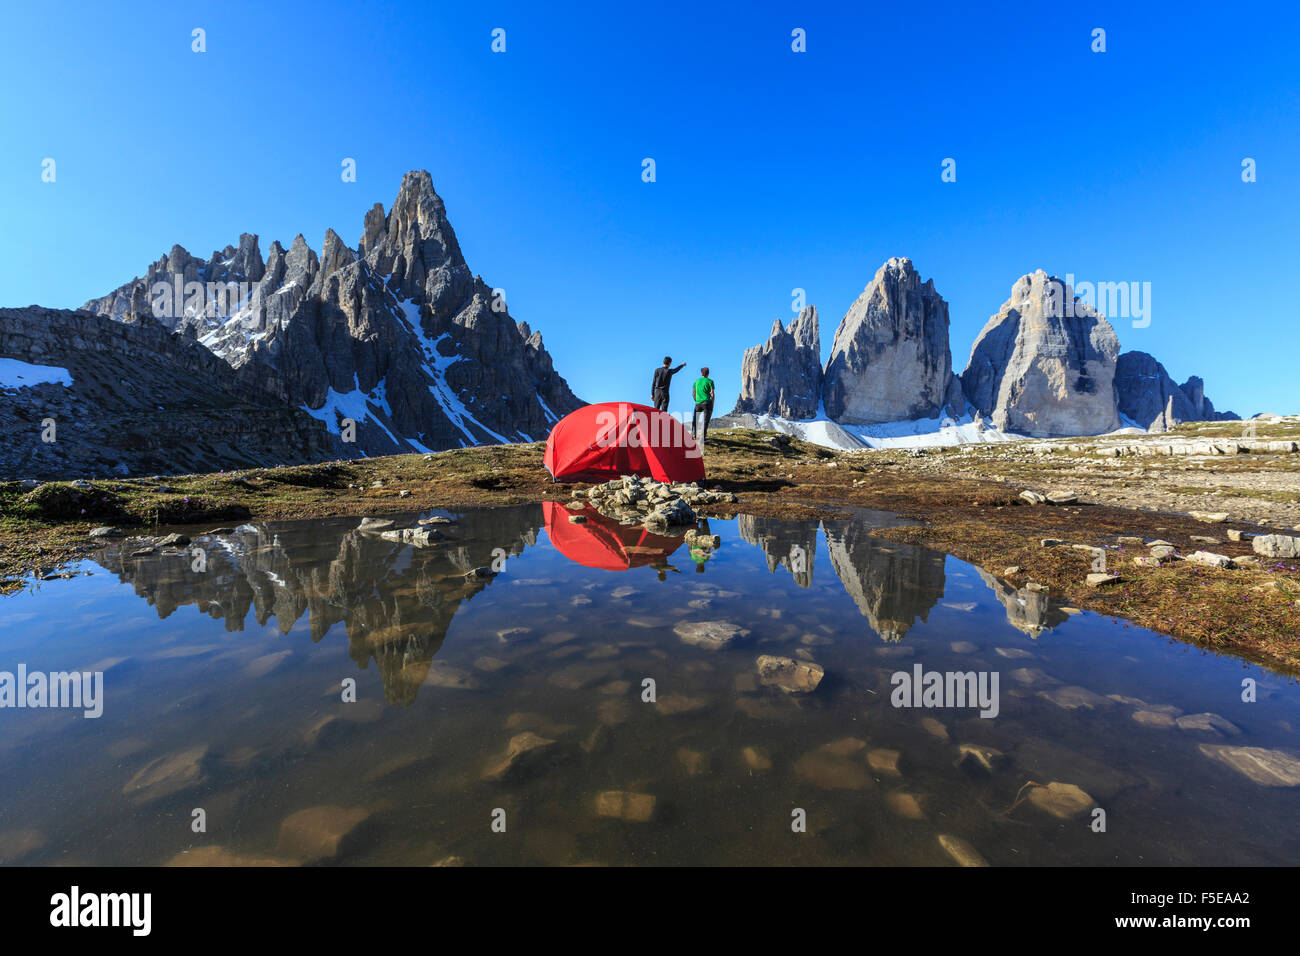 Hikers camped for the night admire the Three Peaks of Lavaredo on awakening, Sesto, Dolomites, Trentino-Alto Adige, - Stock Image